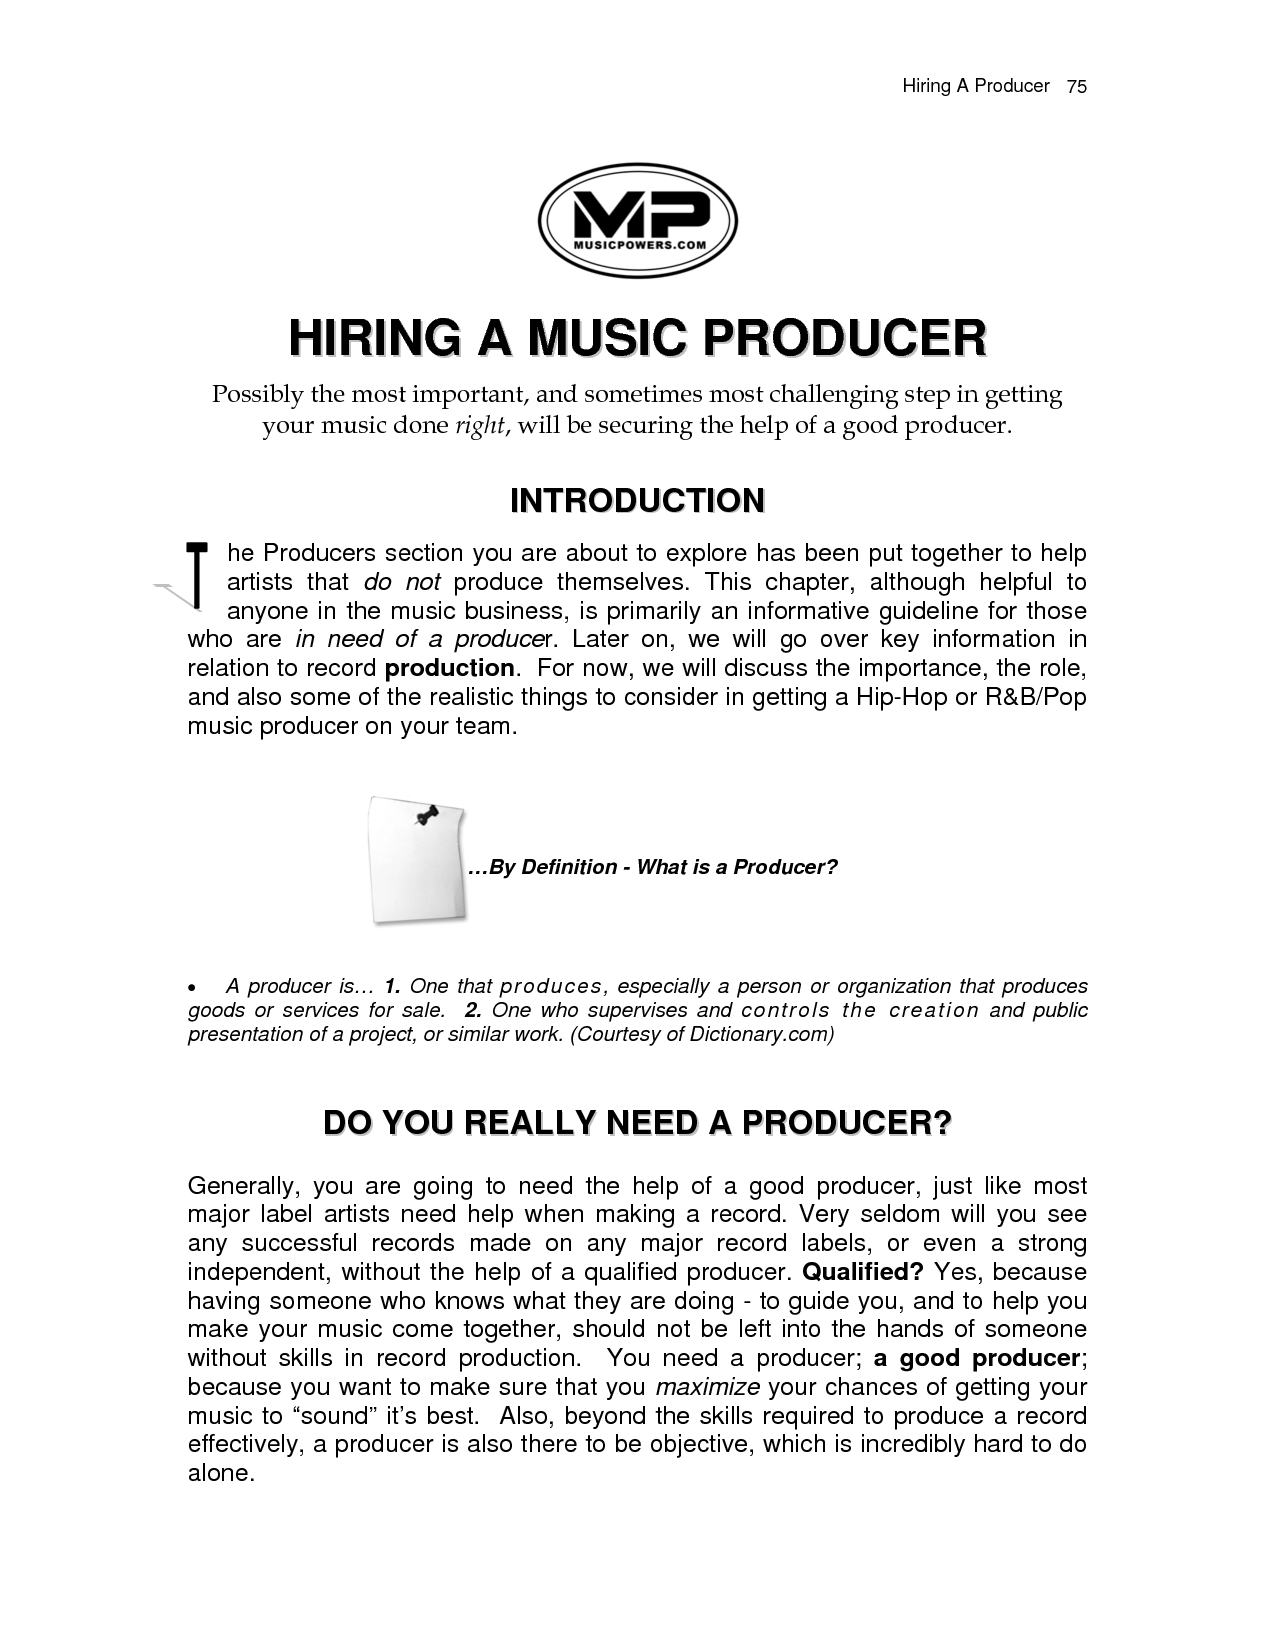 Producer Label Music Producer Record Label Contract By